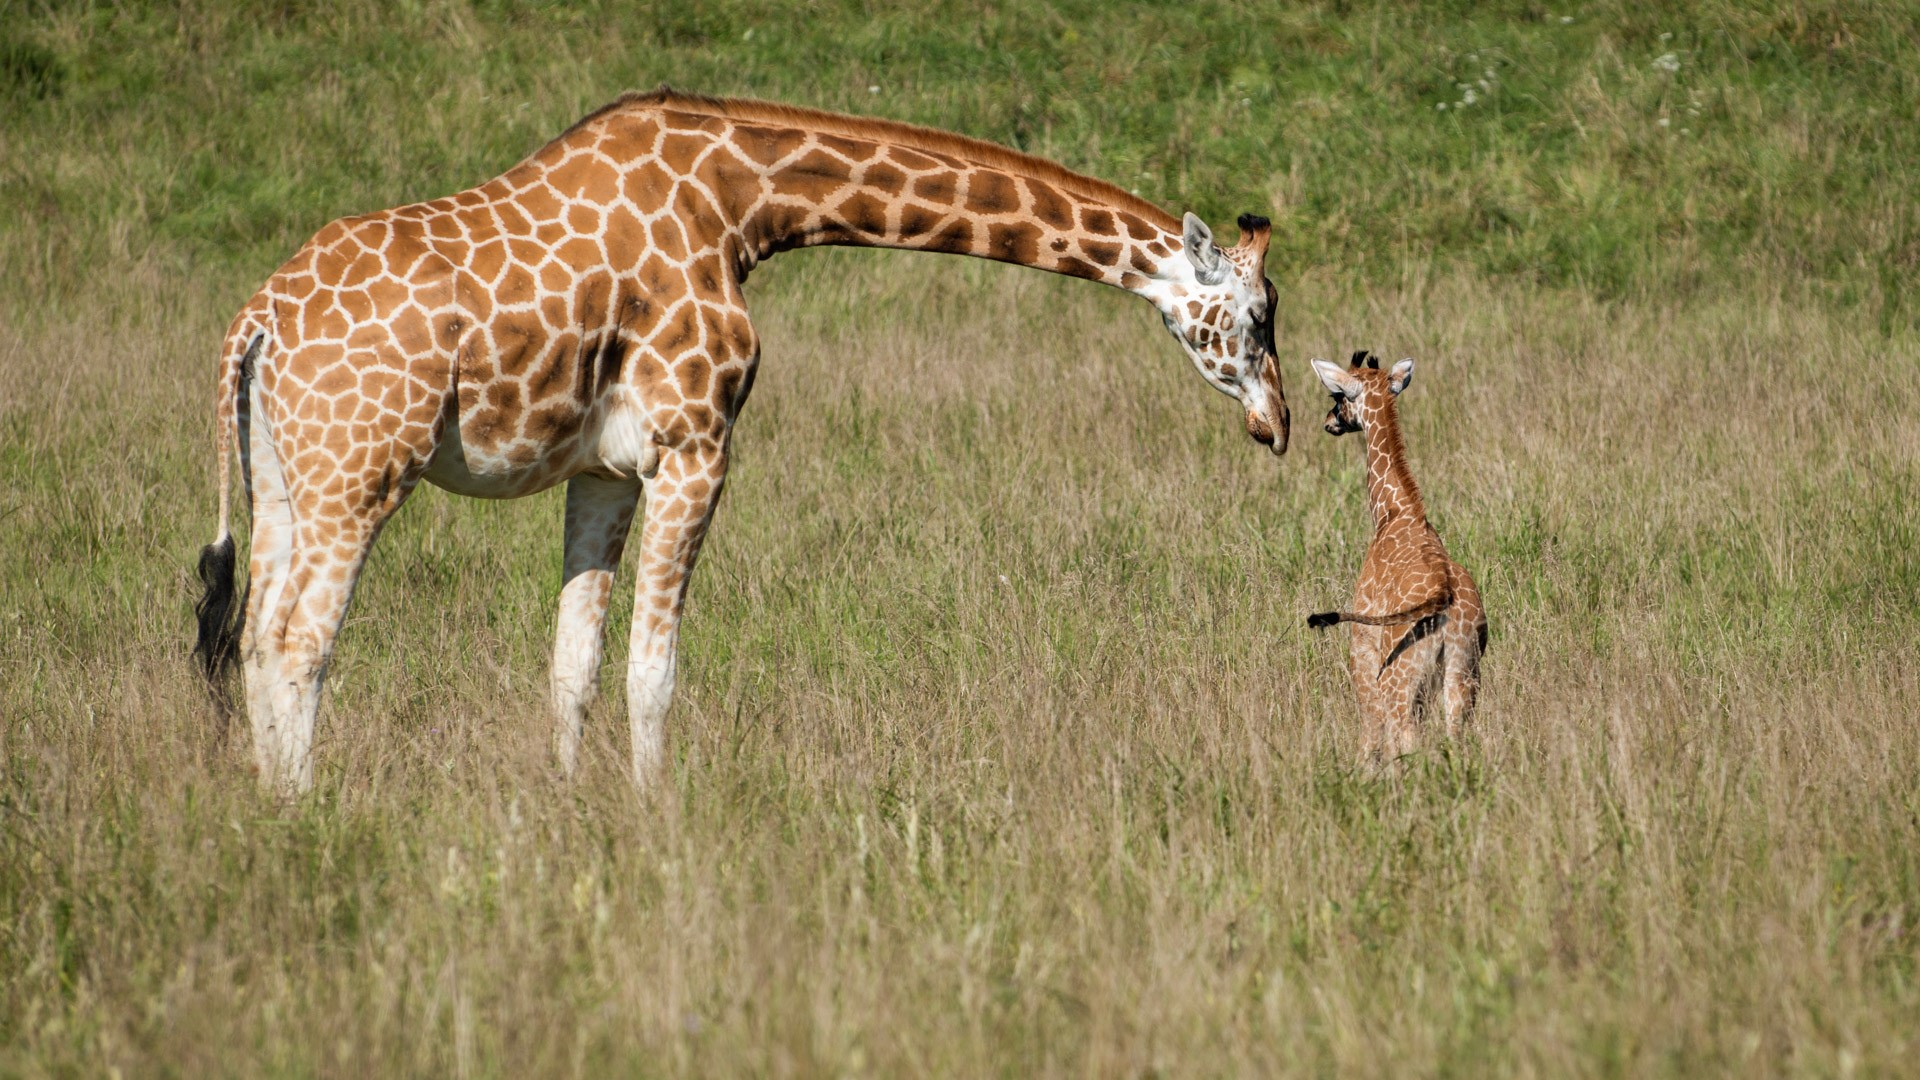 A giraffe with its youngling.